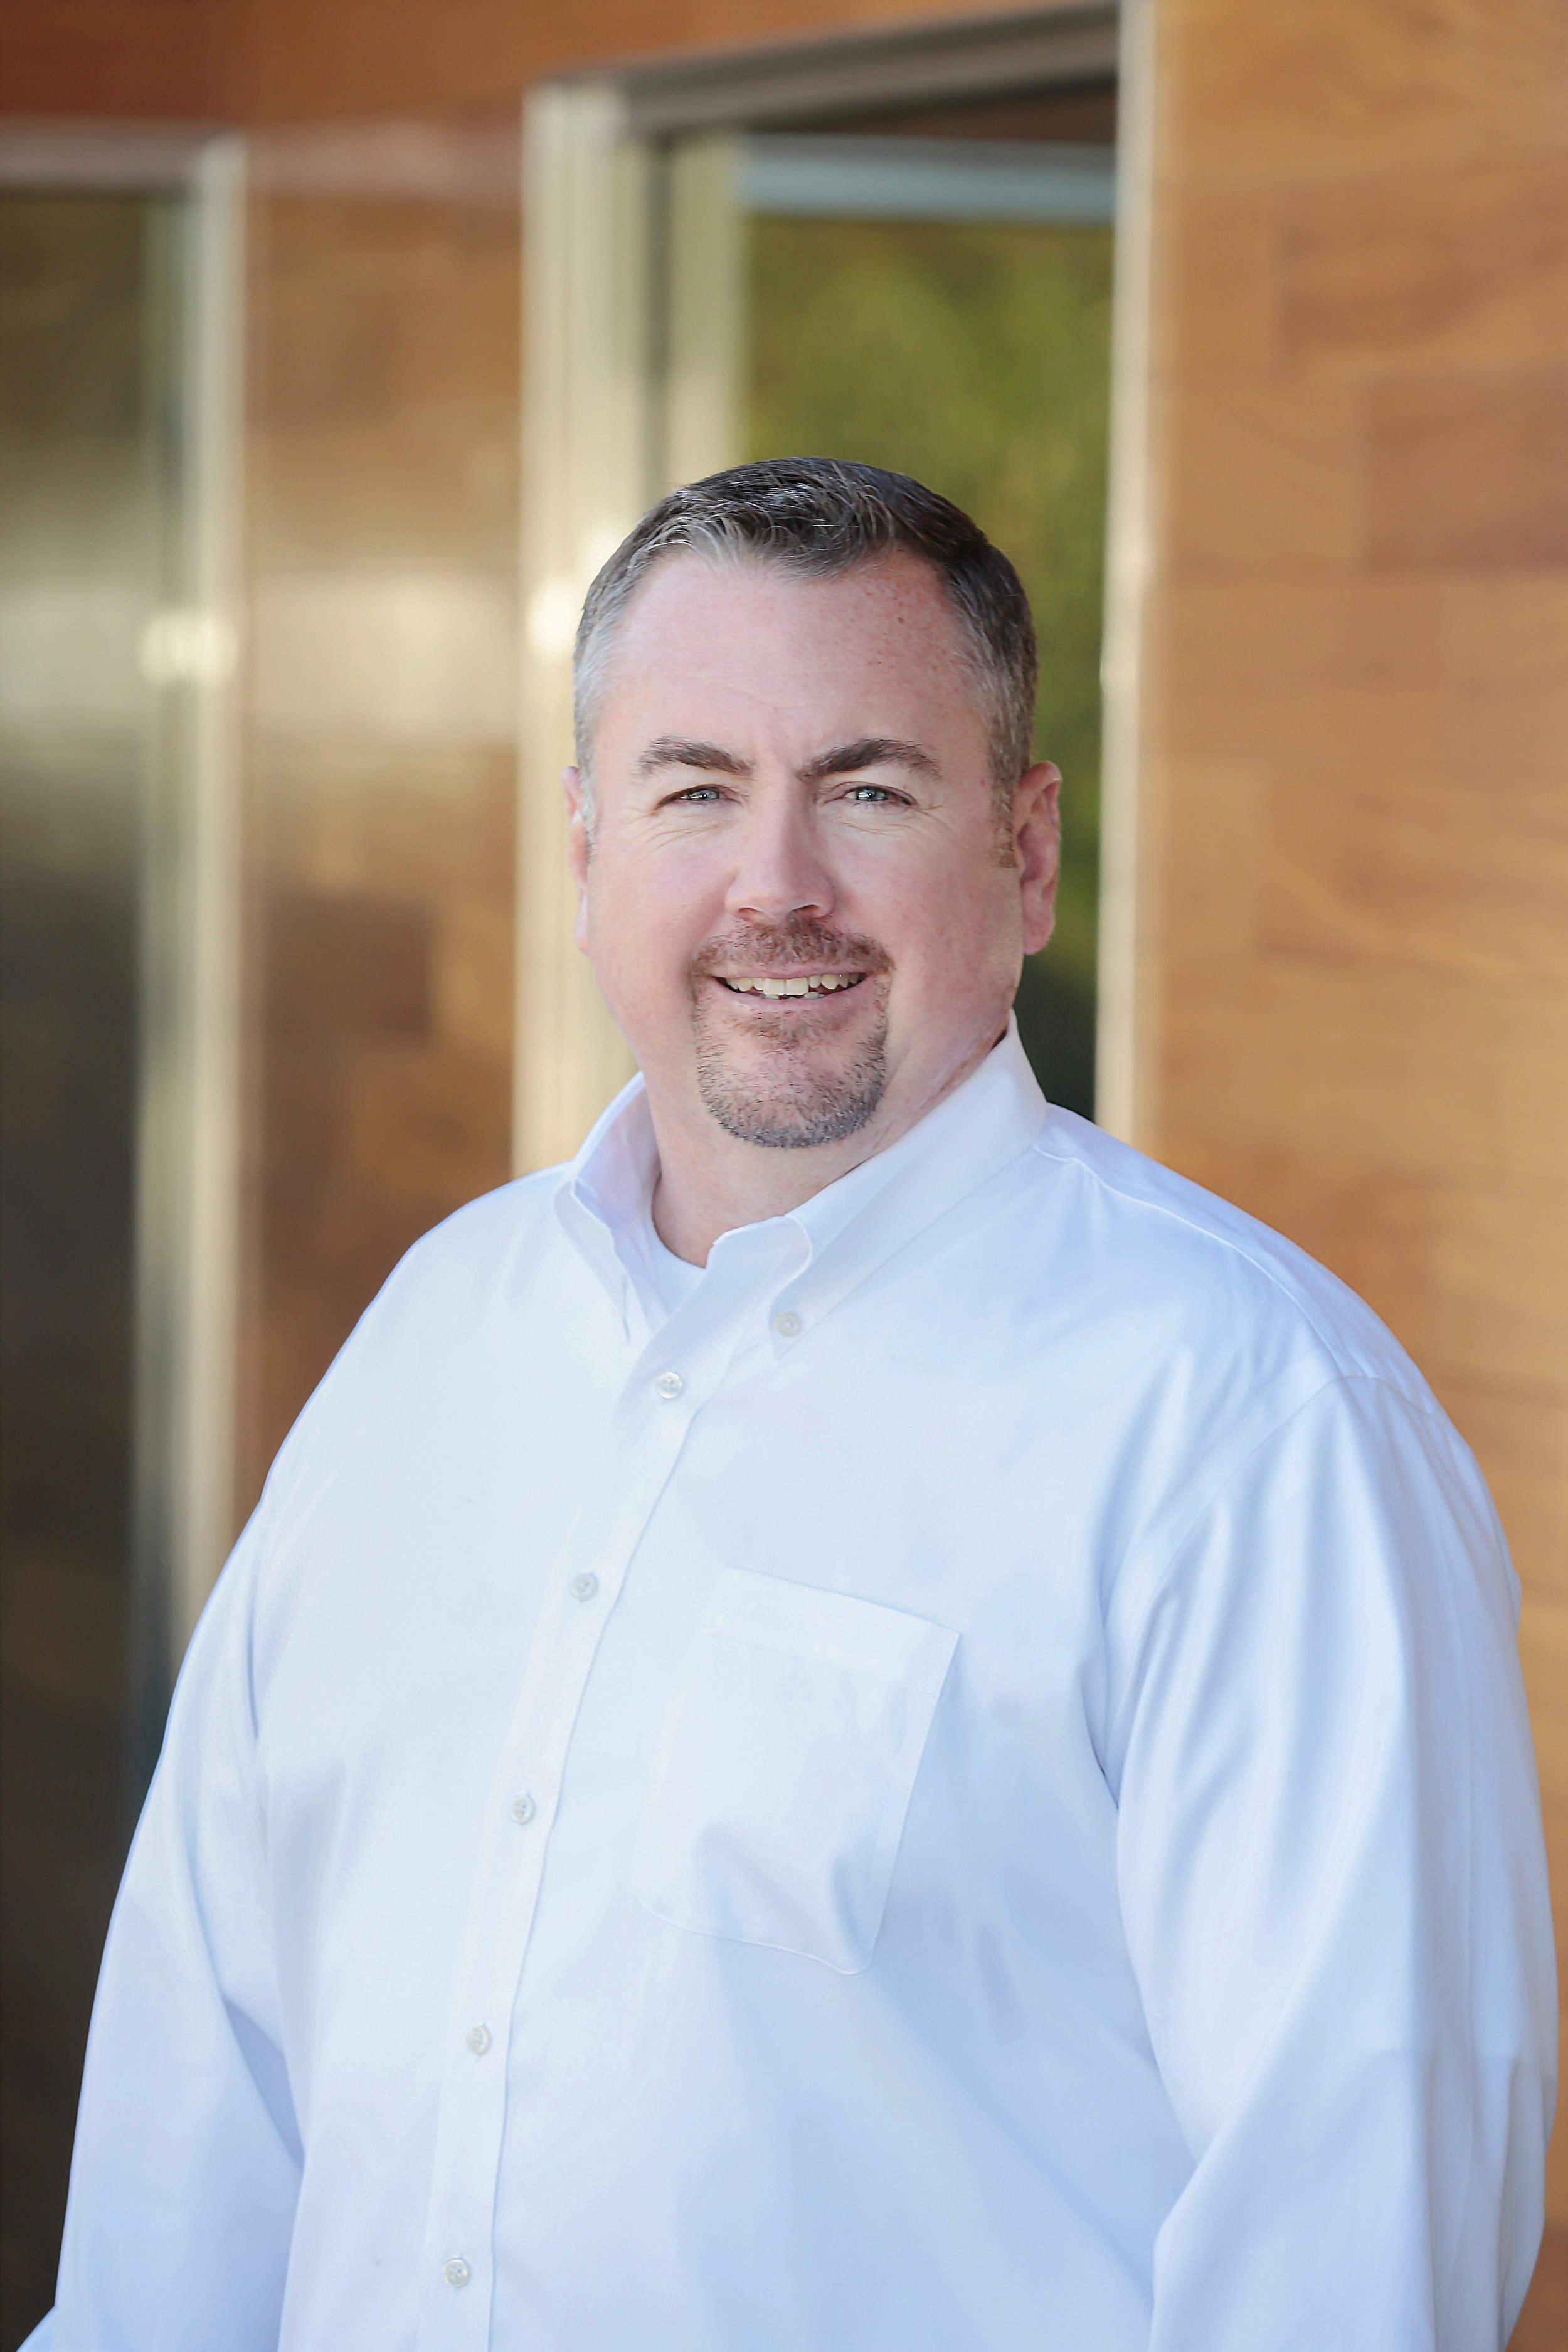 - DAVID BAIRDProject ManagerDavid manages all aspects of ensuring your project is done on time and within budget. With years of commercial construction experience, he's adept at preparing accurate estimates and project schedules.As project manager, David is in charge of coordinating the work of multiple subcontractors on each job and keeping you informed every step of the way. At Gidel & Kocal, David has managed GSA projects, medical and dental office build outs, bank retail remodels, ground-up auto dealership projects, as well as tenant improvements in a variety of structures.Joining Gidel & Kocal as a carpenter, David quickly worked his way through the ranks proving to that field knowledge is key when managing projects. In addition to being well versed in ADA and environmental codes, David is certified and has managed asbestos abatement projects. With an advanced education specializing in electronics, David holds degrees in advanced electronics and computers from Diablo Valley College and AC/DC theory and electronics from Heald Institute of Technology.Contact David